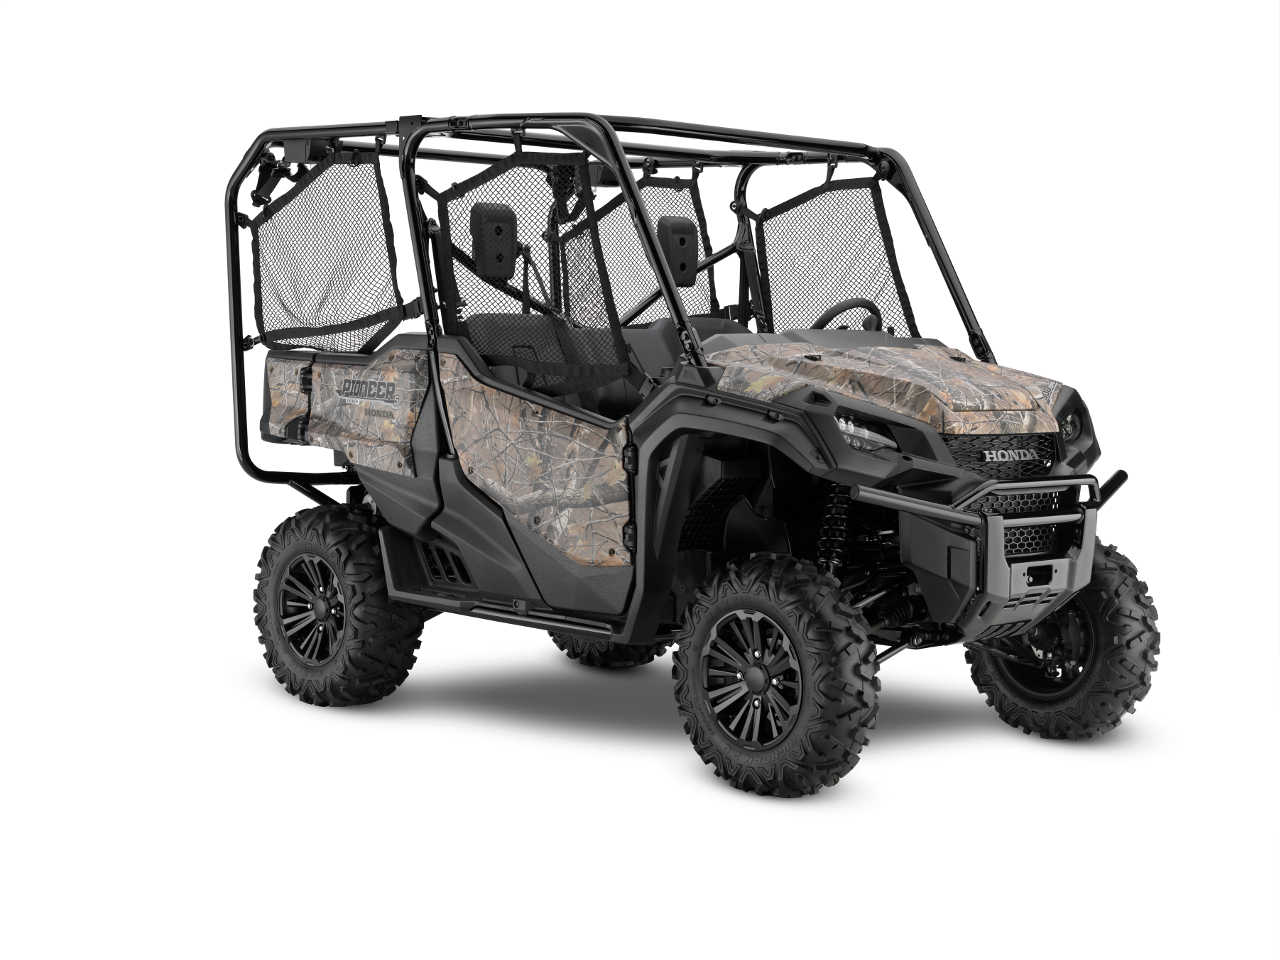 honda announces 2016 pioneer 1000 atv illustrated. Black Bedroom Furniture Sets. Home Design Ideas